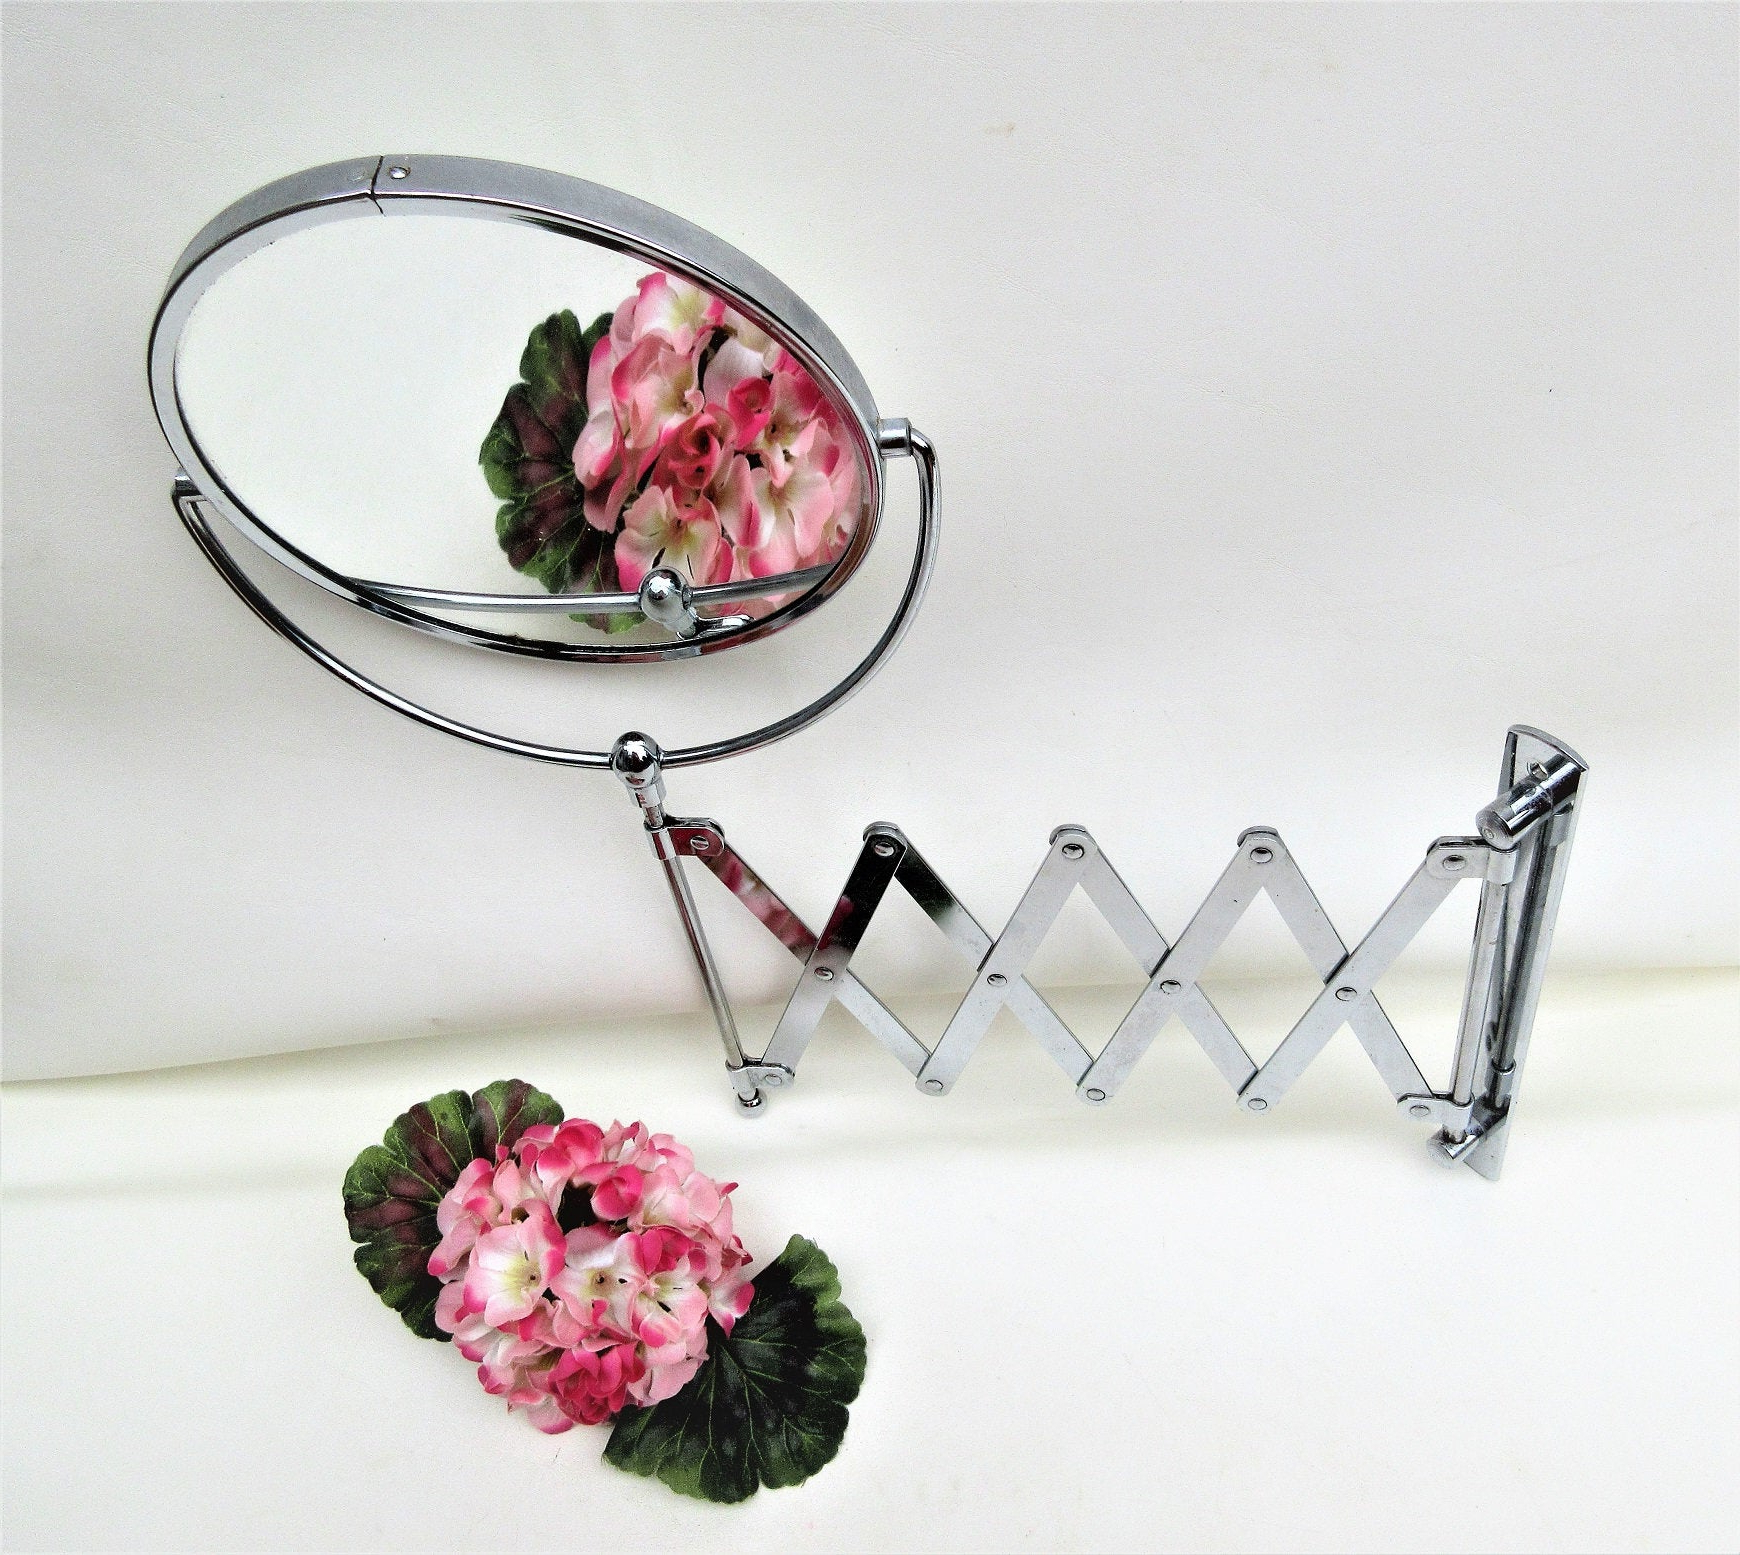 Tilting Mirror With Regard To Most Popular Accordion Wall Mirrors (View 17 of 20)